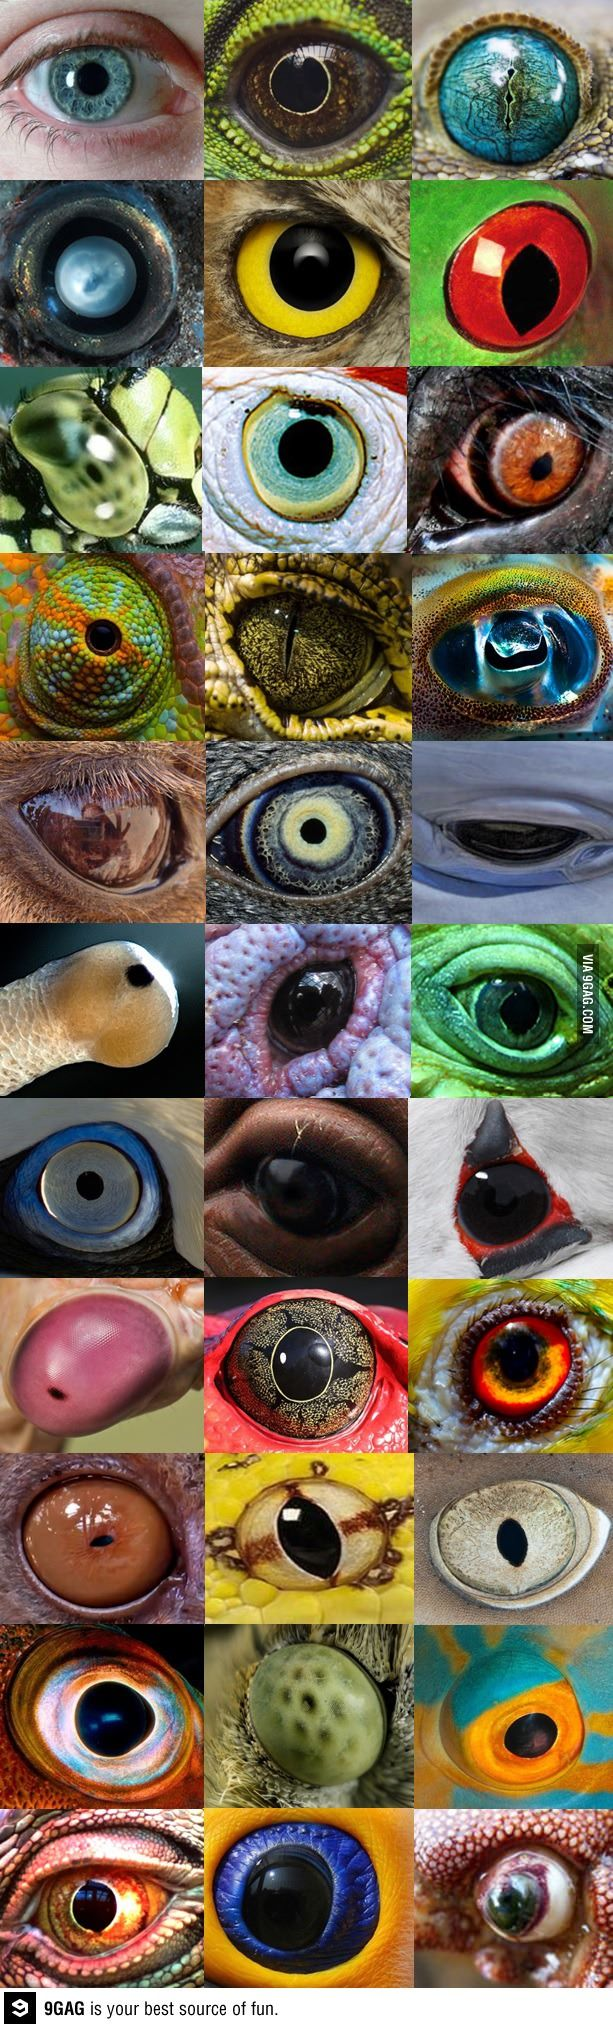 Eyes are so amazing.  Still not sure what C1 would be -- but an eye that looks like a globe is incredible to me.